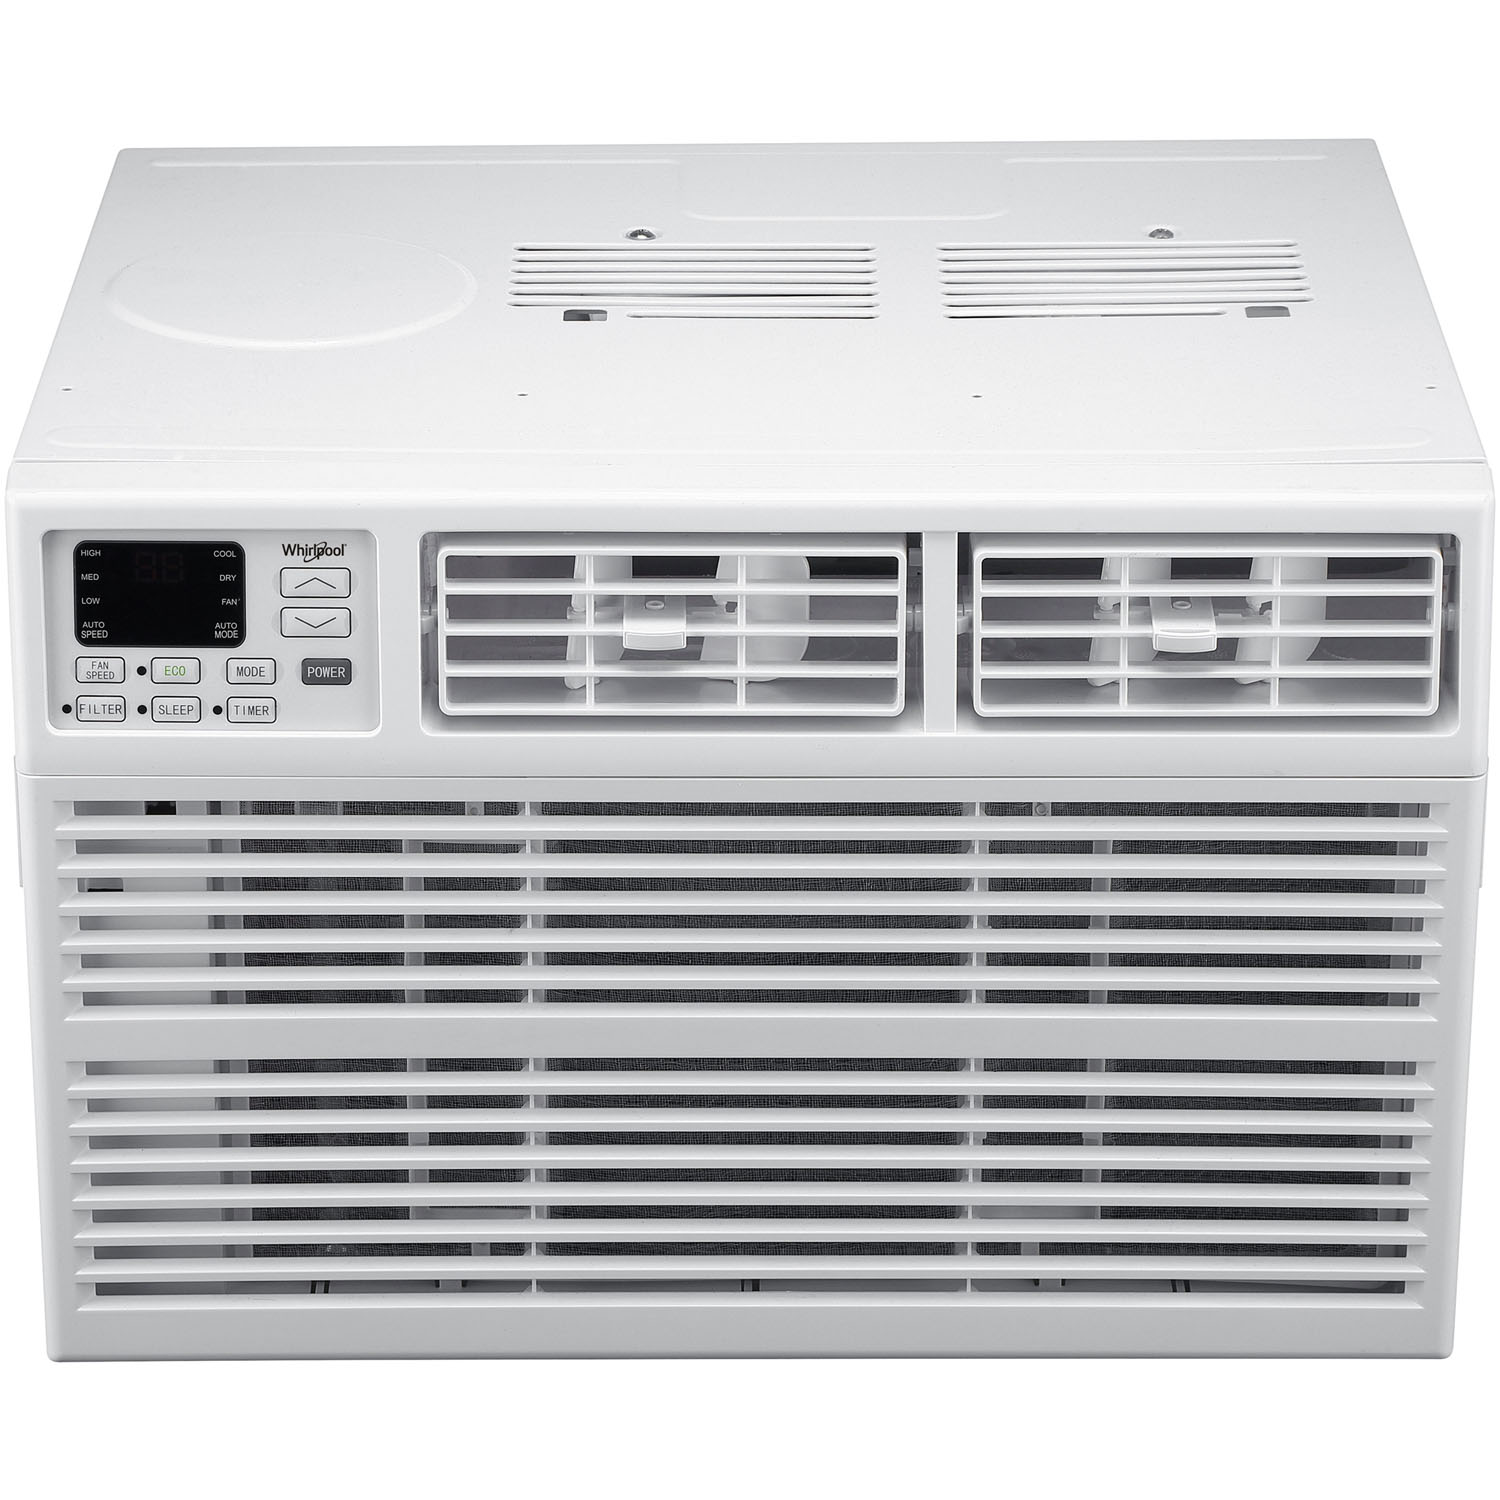 Whirlpool Energy Star 15,000 BTU 115V Window-Mounted Air Conditioner with Remote Control